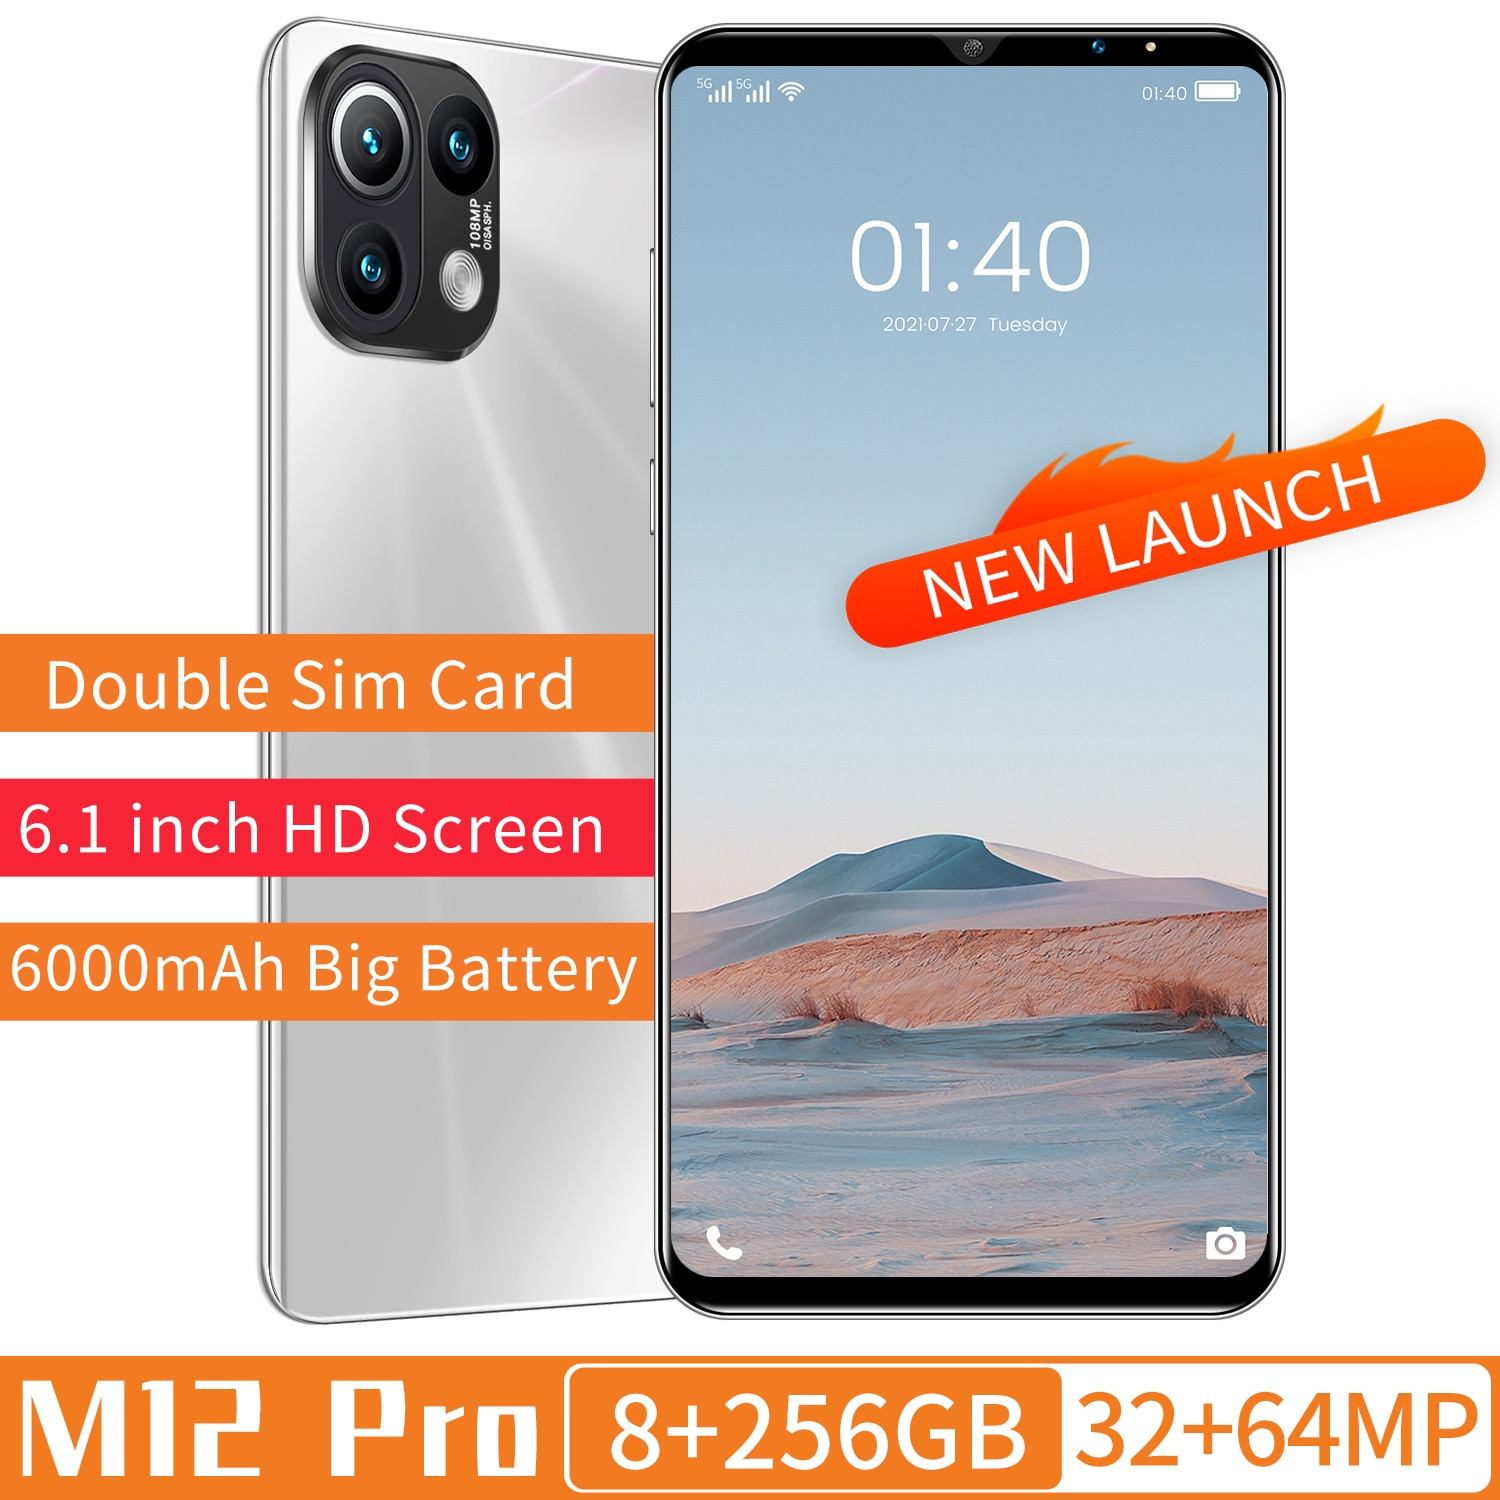 1440*3200 M12 Pro 8+256GB Android 11 Finger ID 6.1Inch Full Screen MTK6889 10Core Dual SIM Card 32+64MP 6000mAh Long Standby enlarge